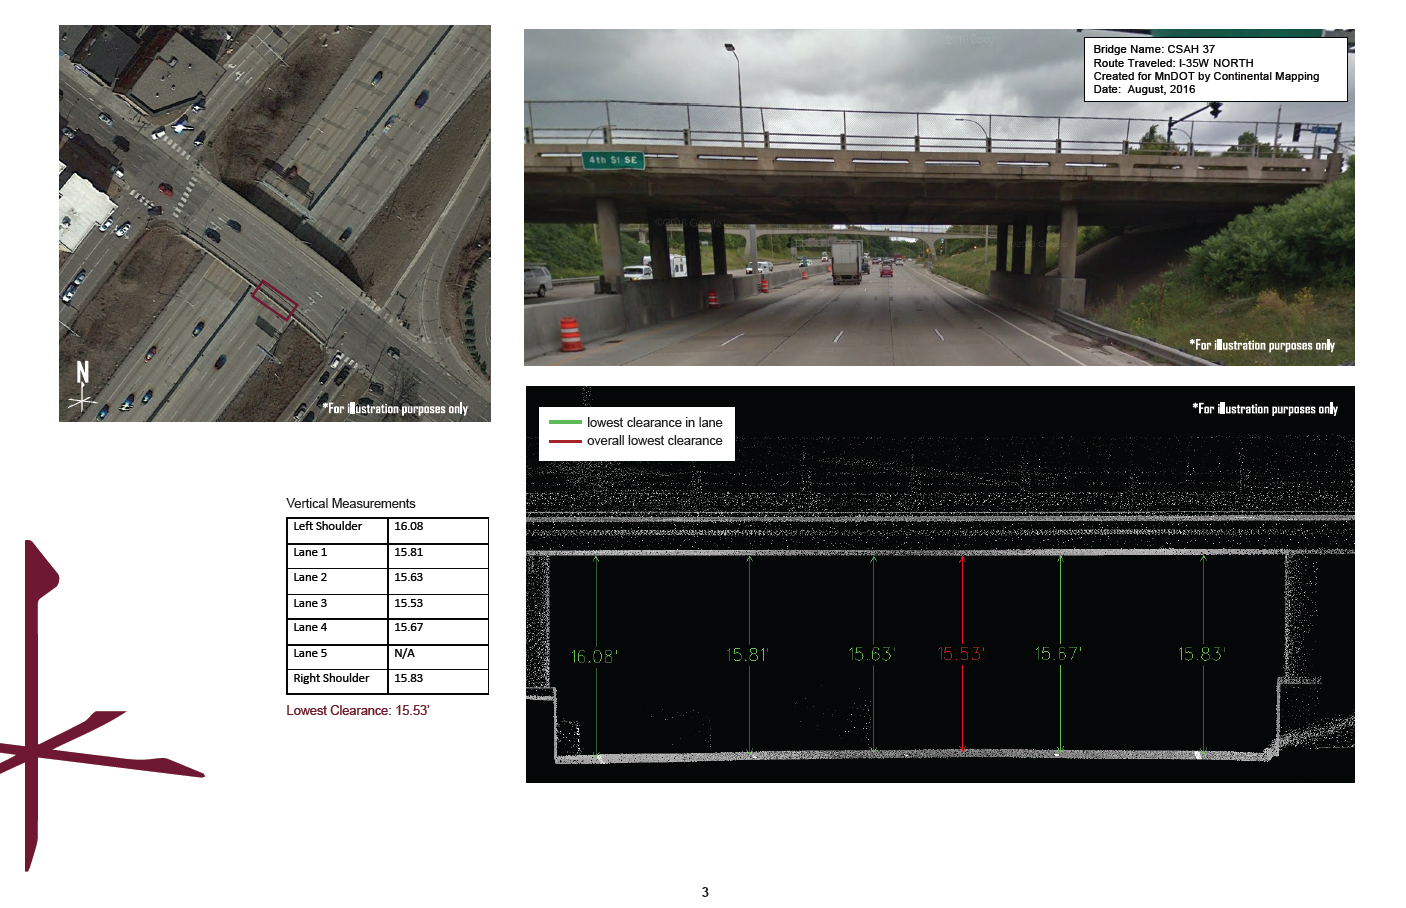 An example of a Map Book showing an aerial image of bridge location, a street level view of bridge, and a virtual clearance measurement graphic of bridge.